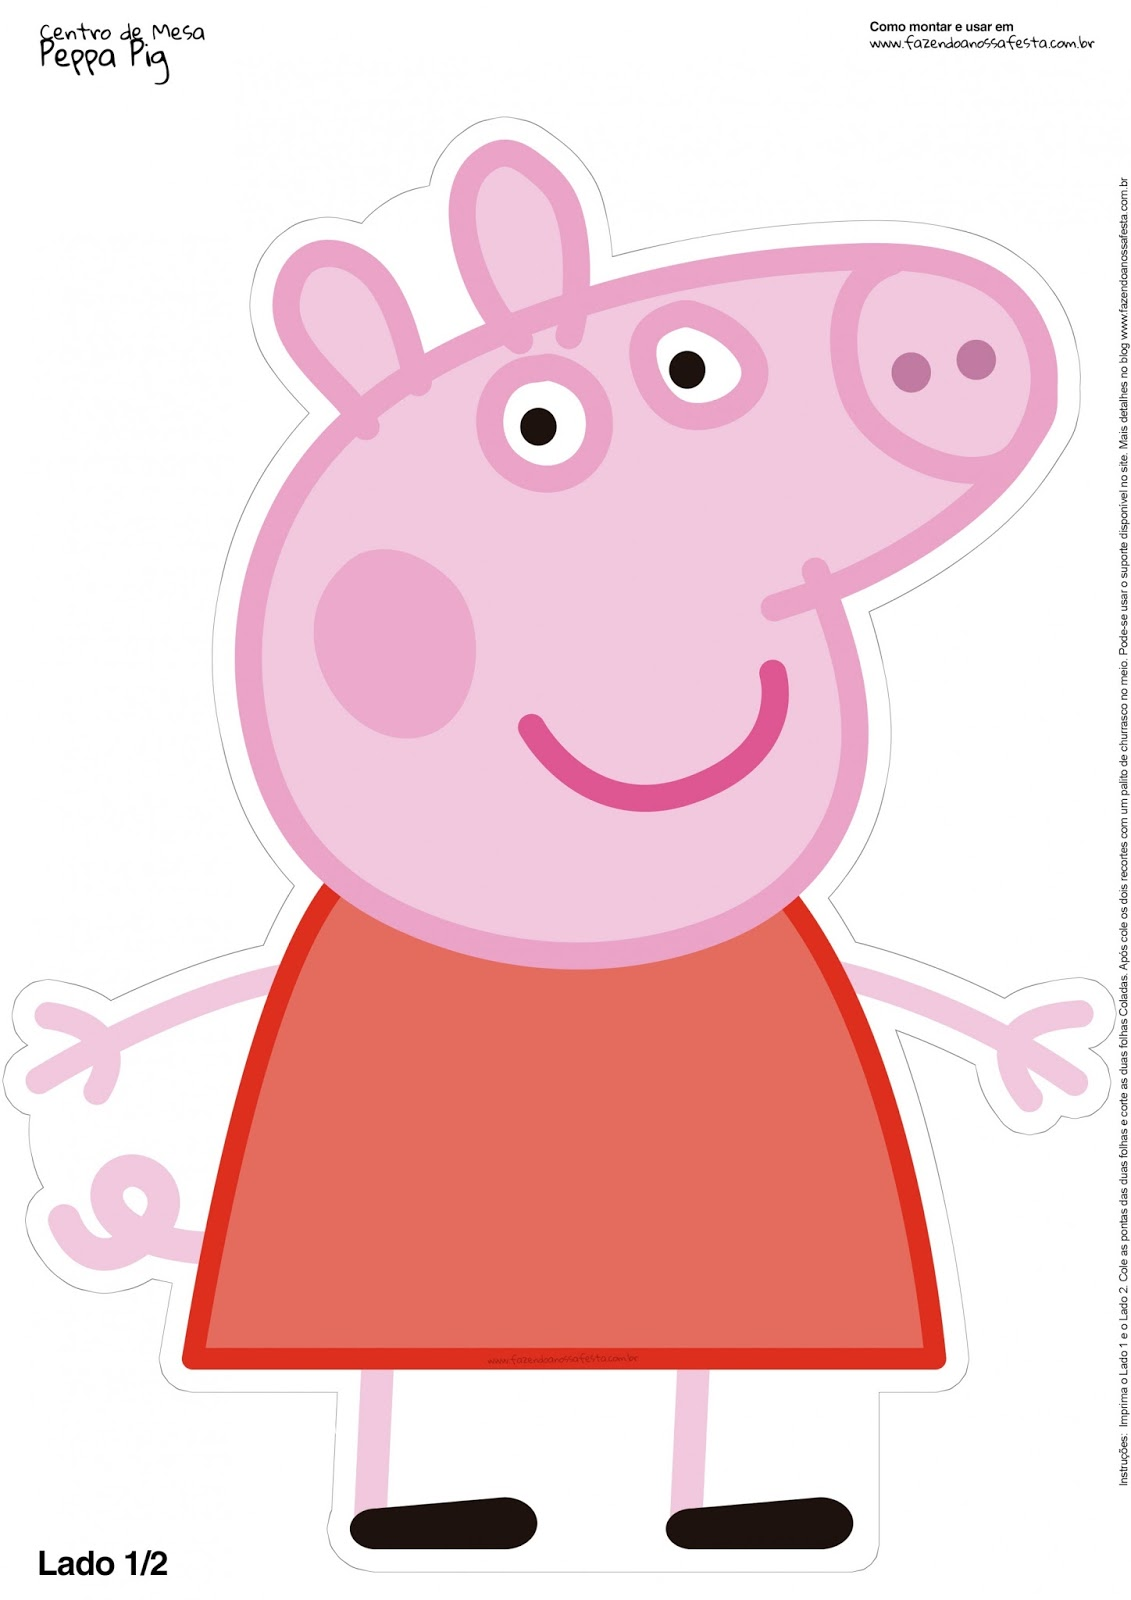 photograph regarding Peppa Pig Character Free Printable Images called Peppa Pig Cost-free Printable Centerpieces. - Oh My Fiesta! in just